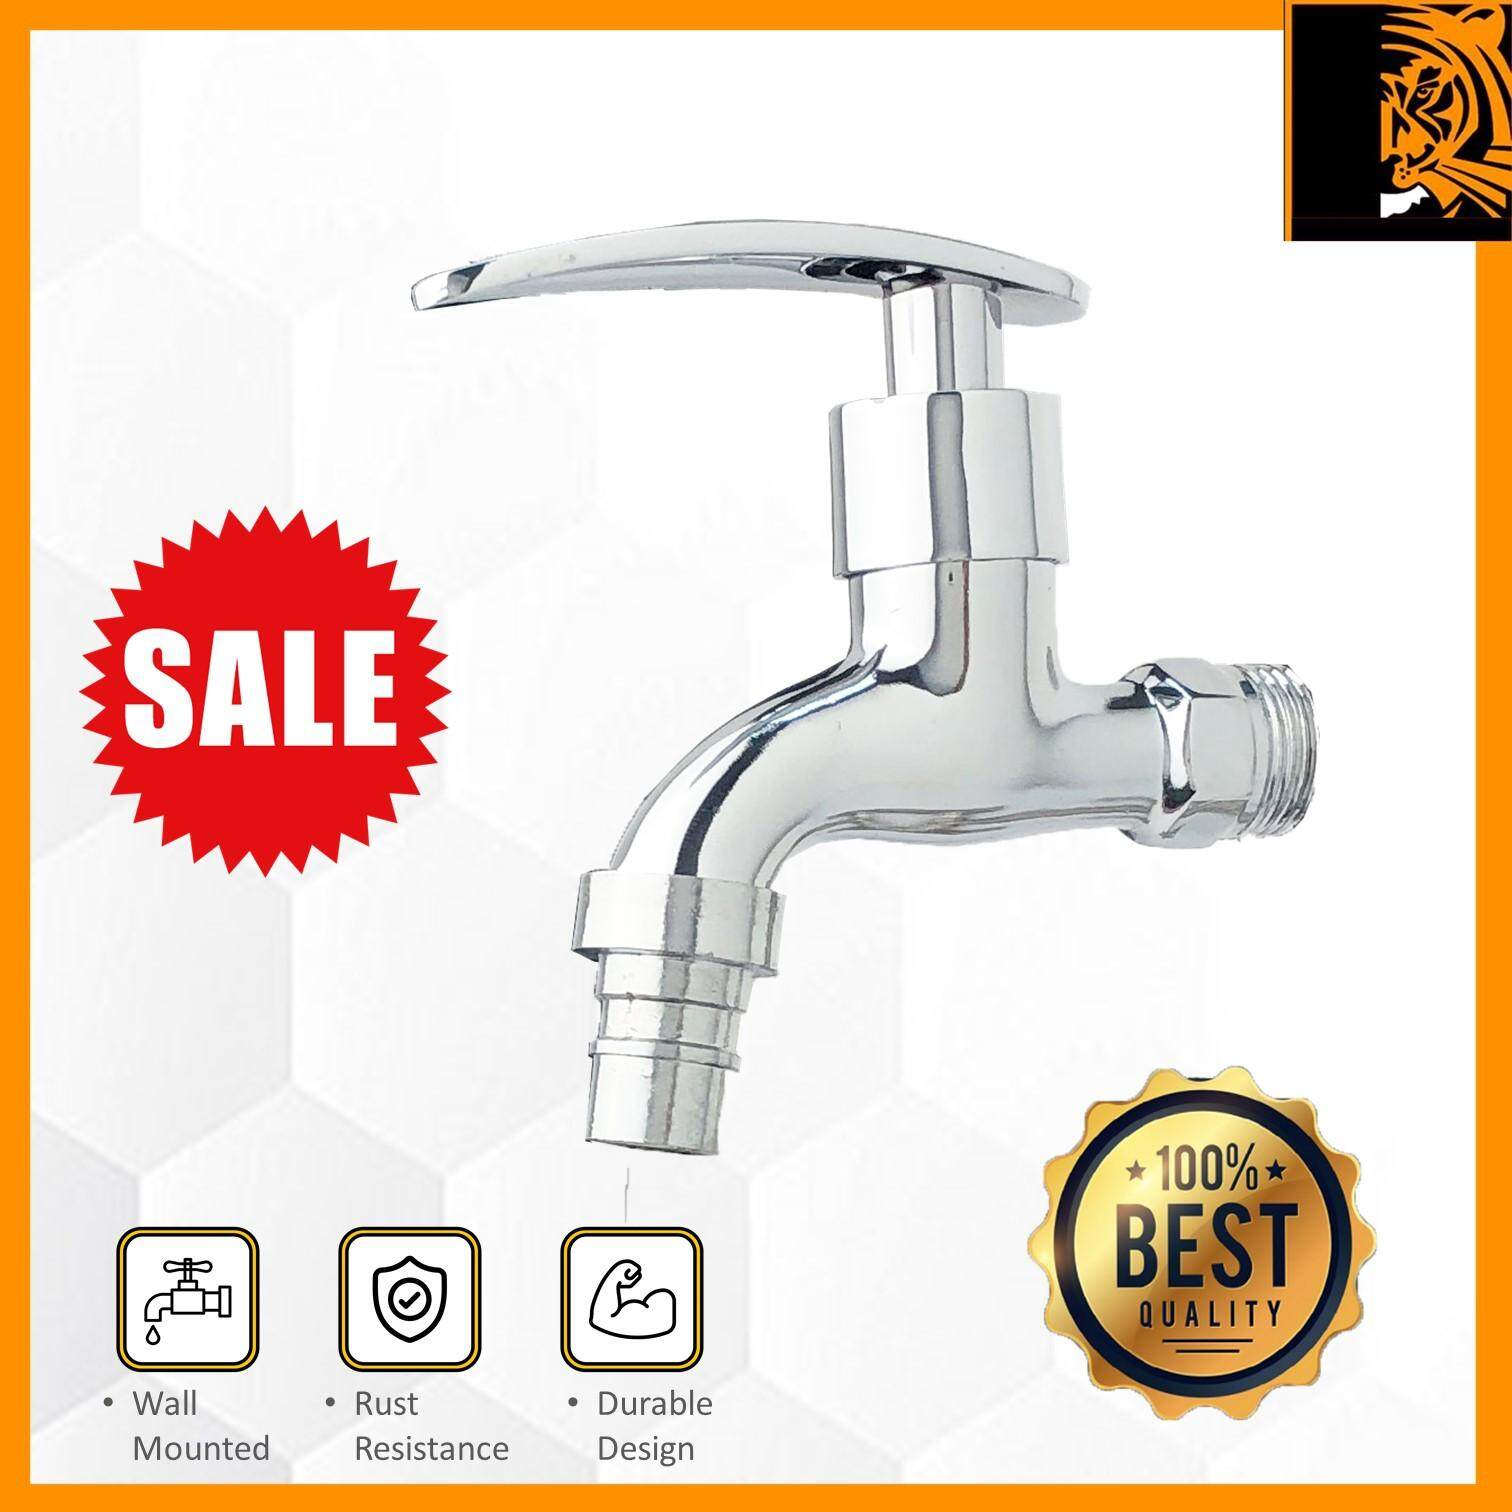 SONCO Bathroom /Washing Machine Faucet Wall Bib Wall Mounted Crescent Handle Water Tap